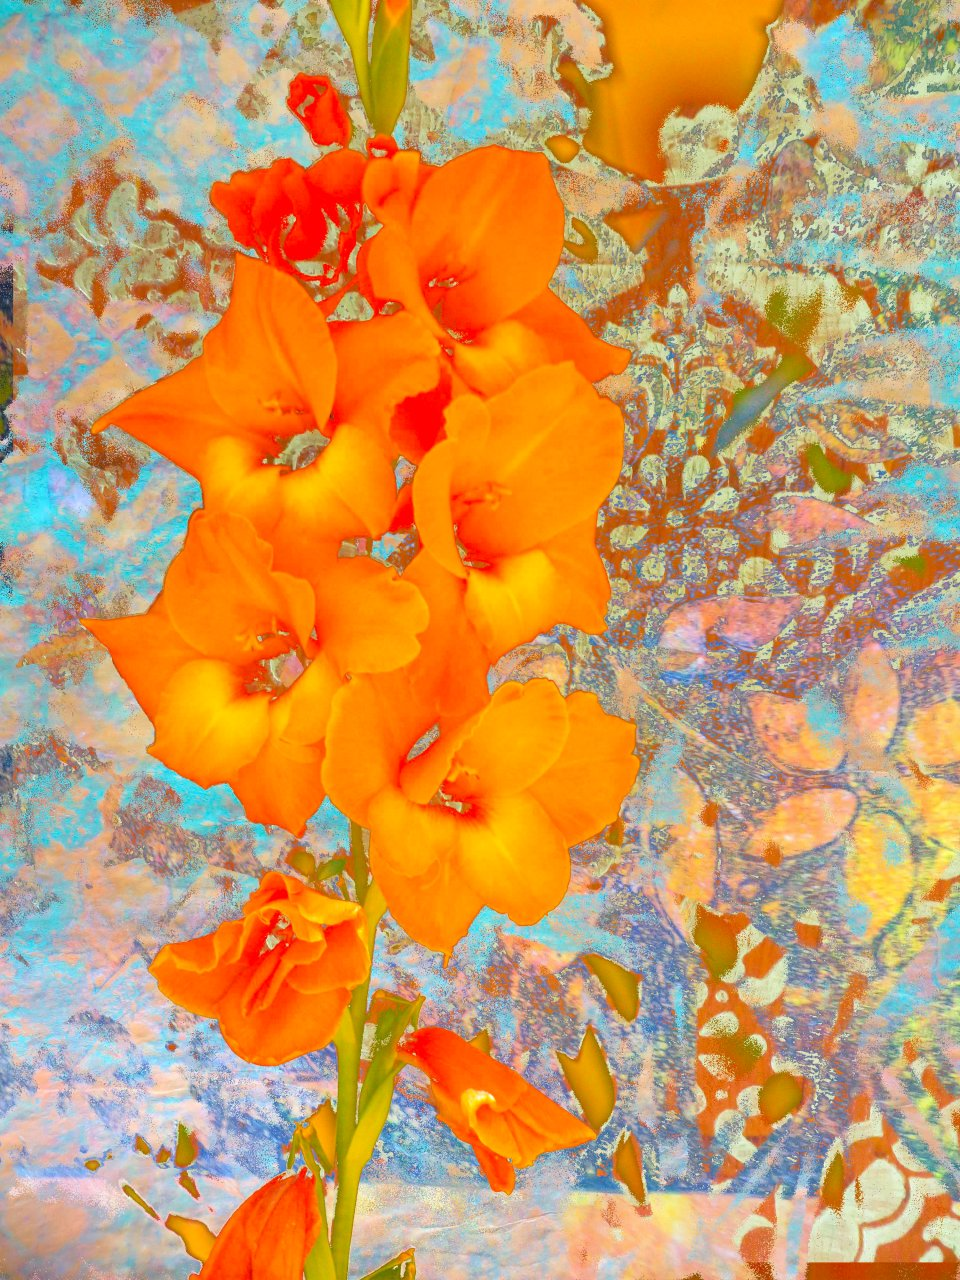 Orange FLowers FLW 22123 fghjtd.jpg